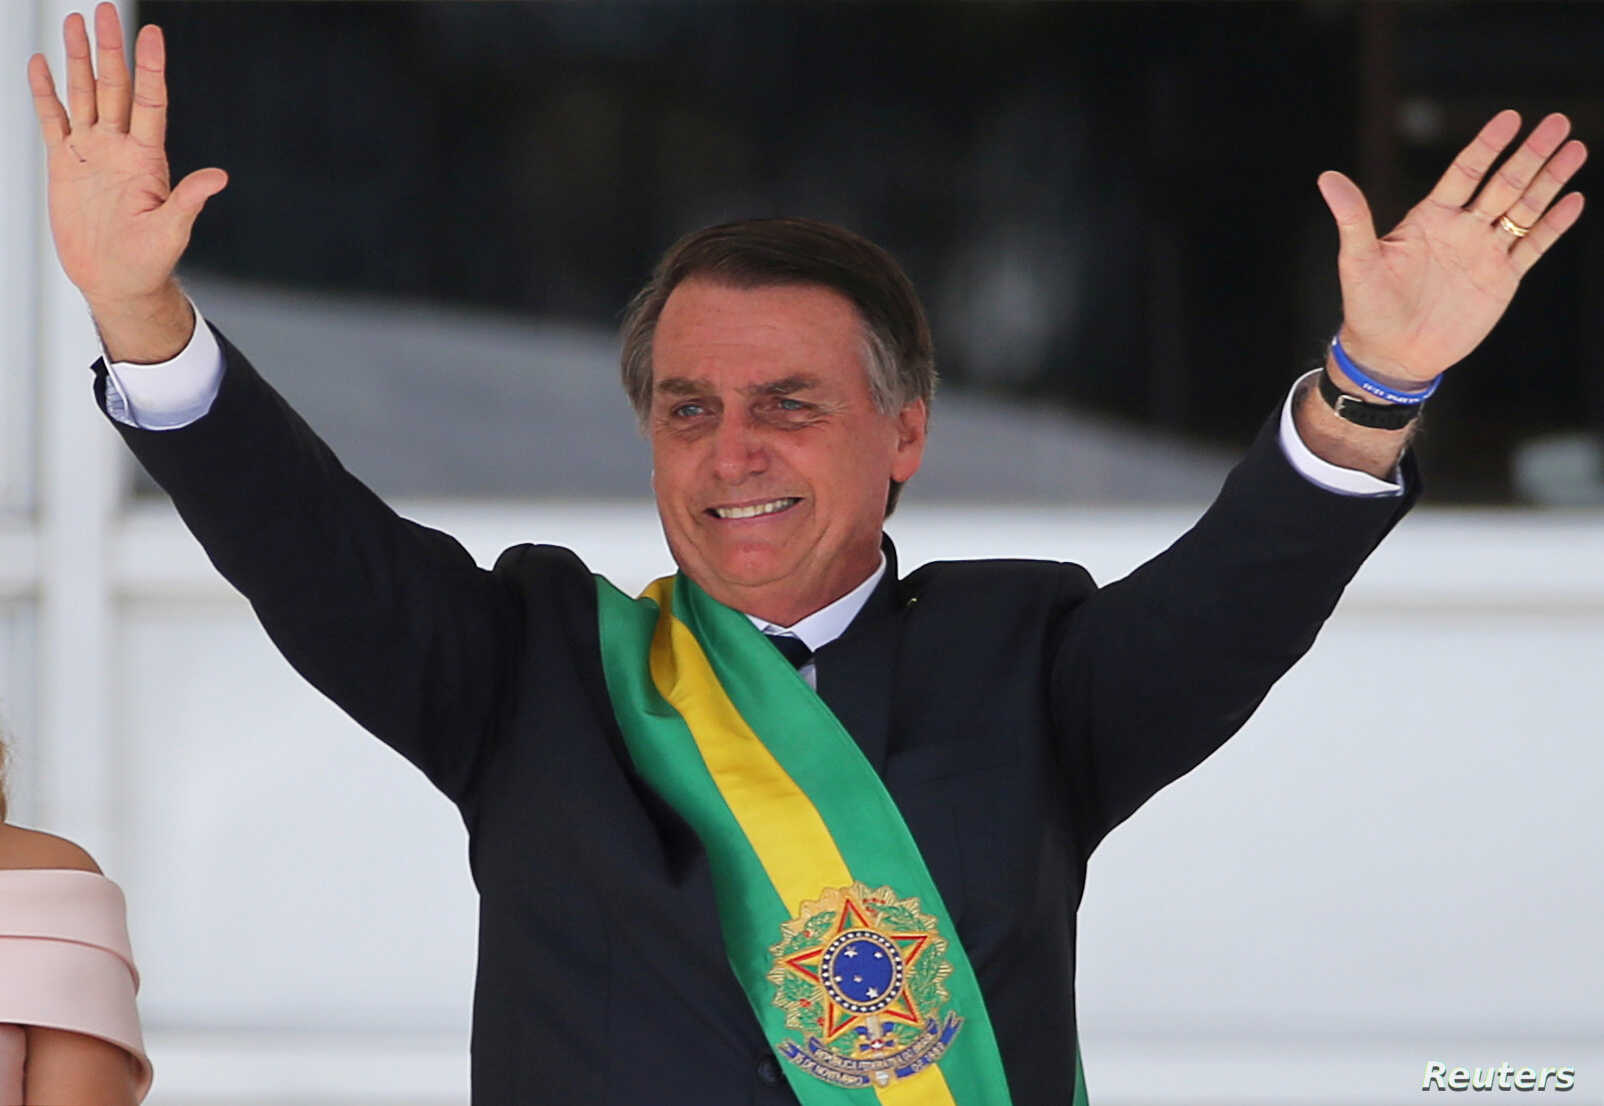 FILE - Brazil's new President Jair Bolsonaro gestures after receiving the presidential sash from outgoing President Michel Temer at the Planalto Palace, in Brasilia, Brazil, Jan. 1, 2019.